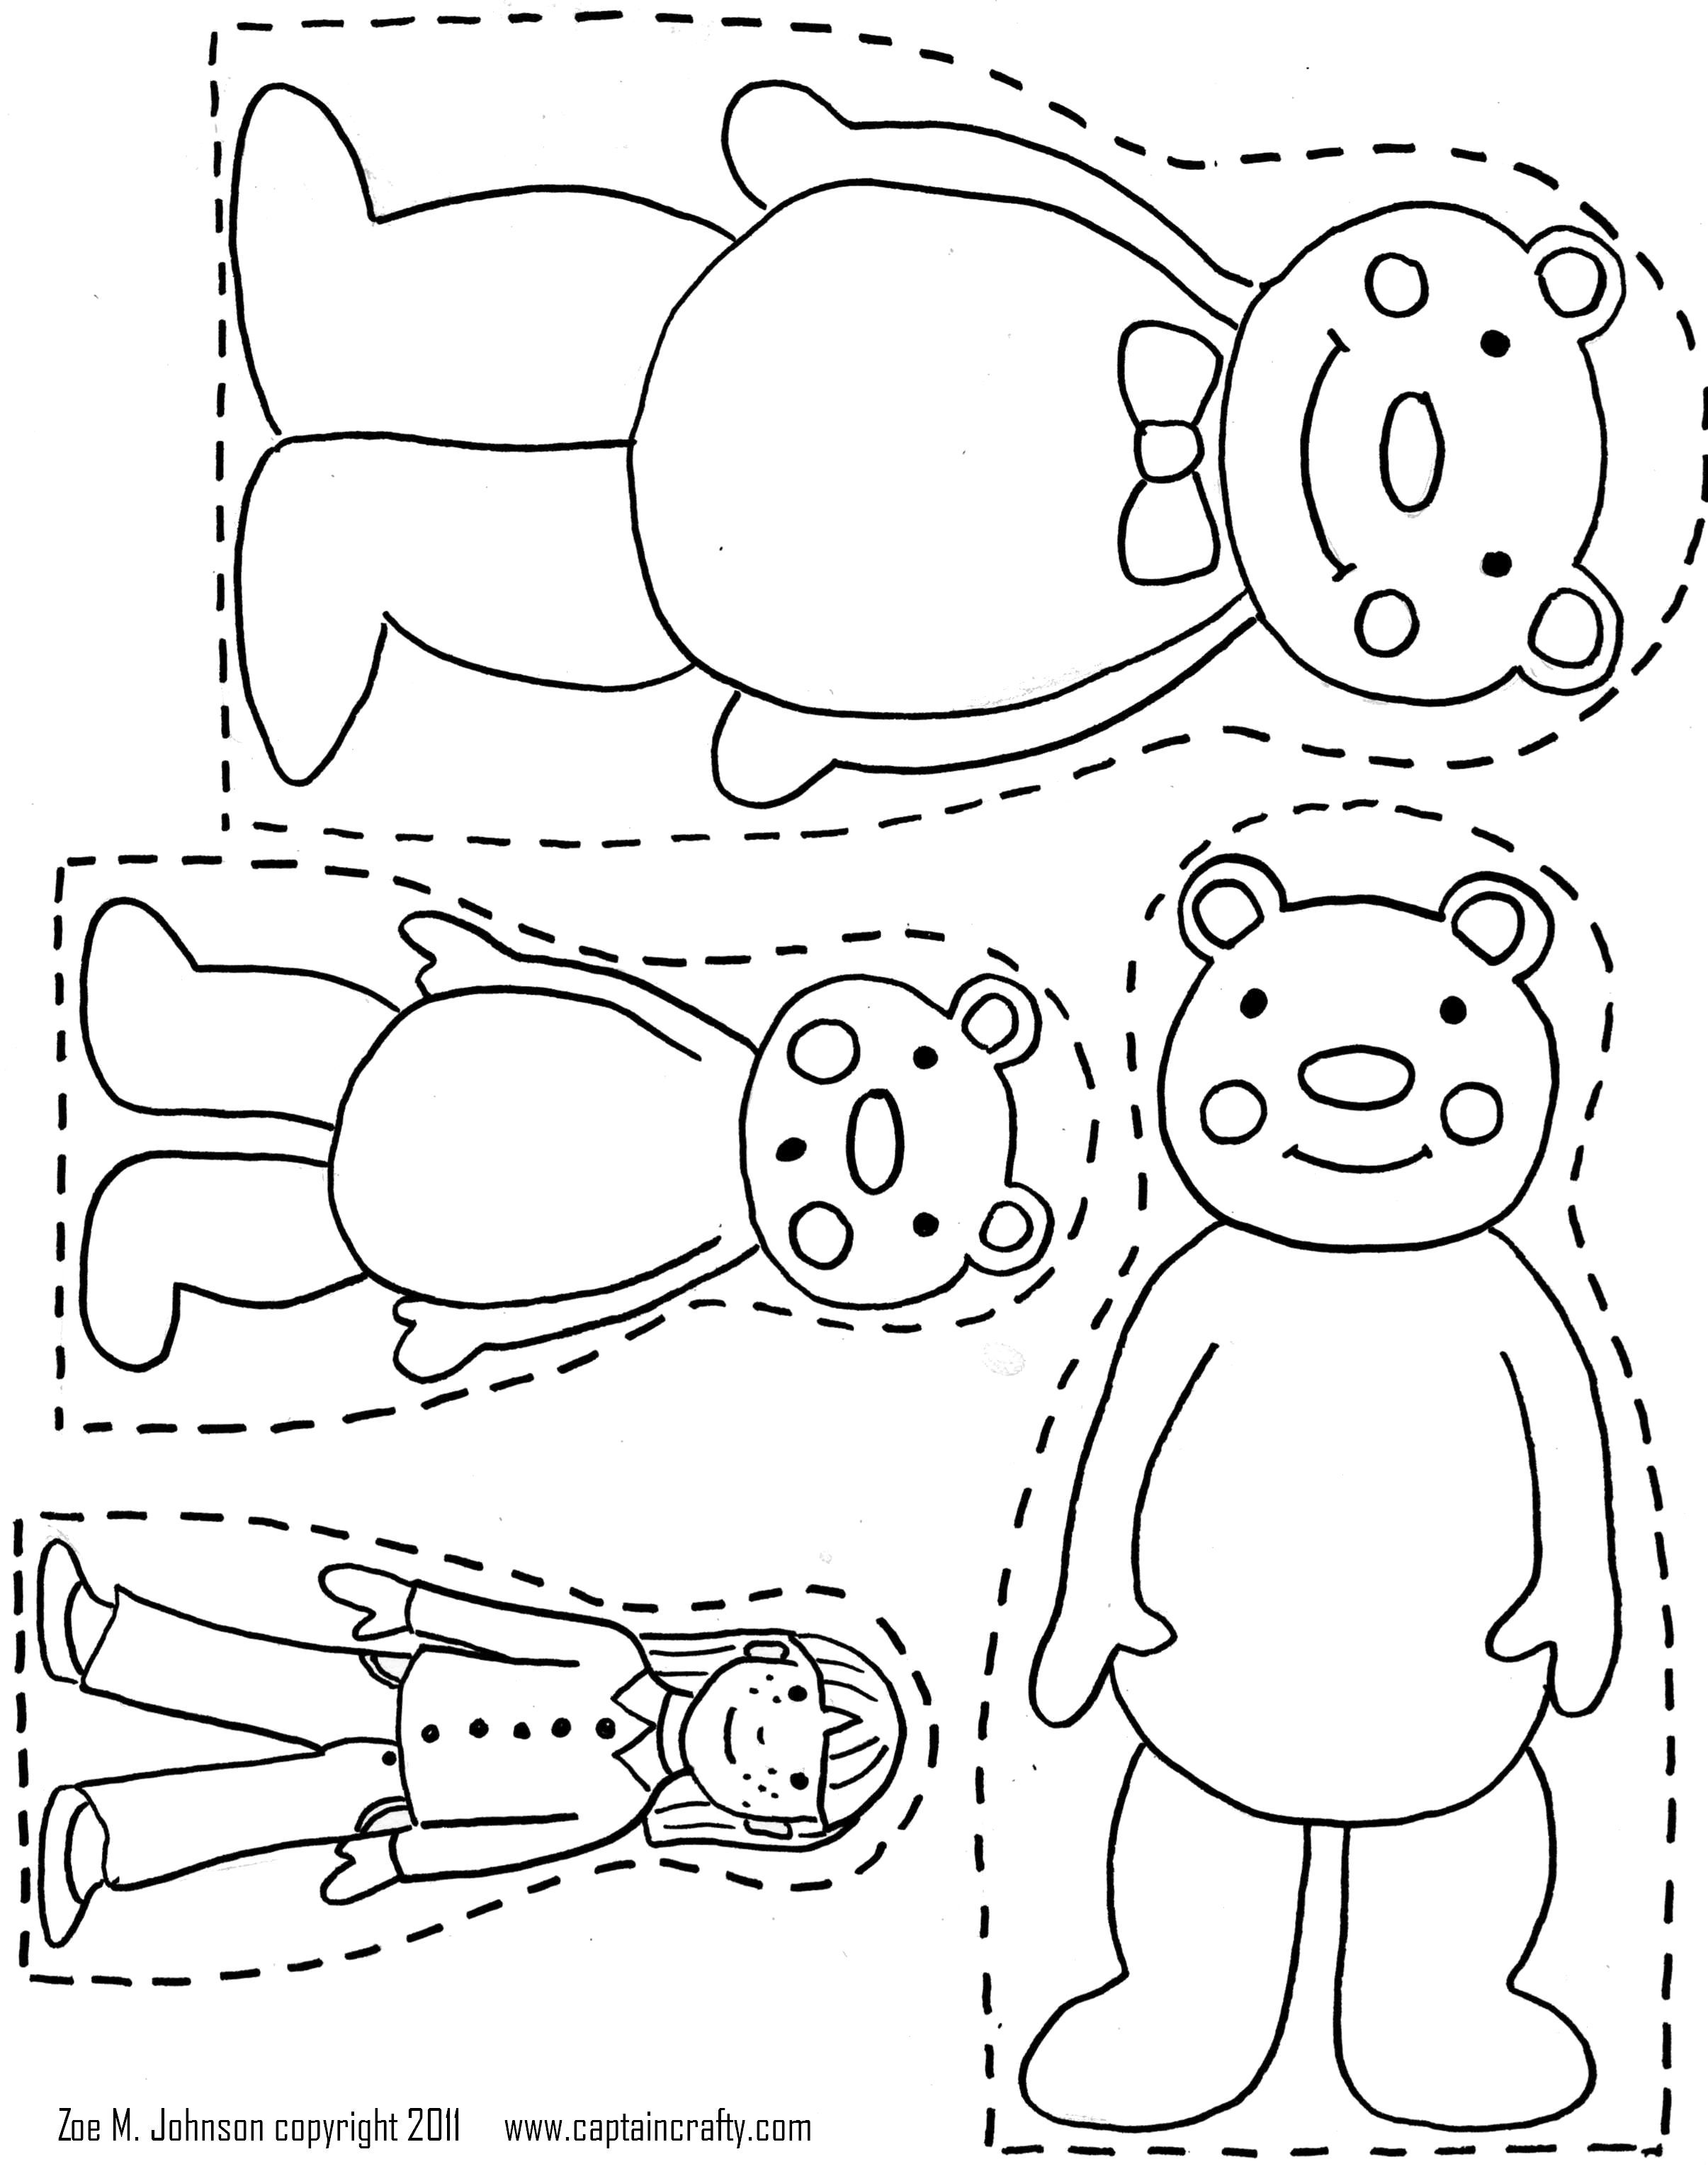 Printables Archive The Handmade Adventures Of Captain Crafty Page 2 Nestingtoys Goldilocks And The Three Bears Bear Coloring Pages Bear Crafts